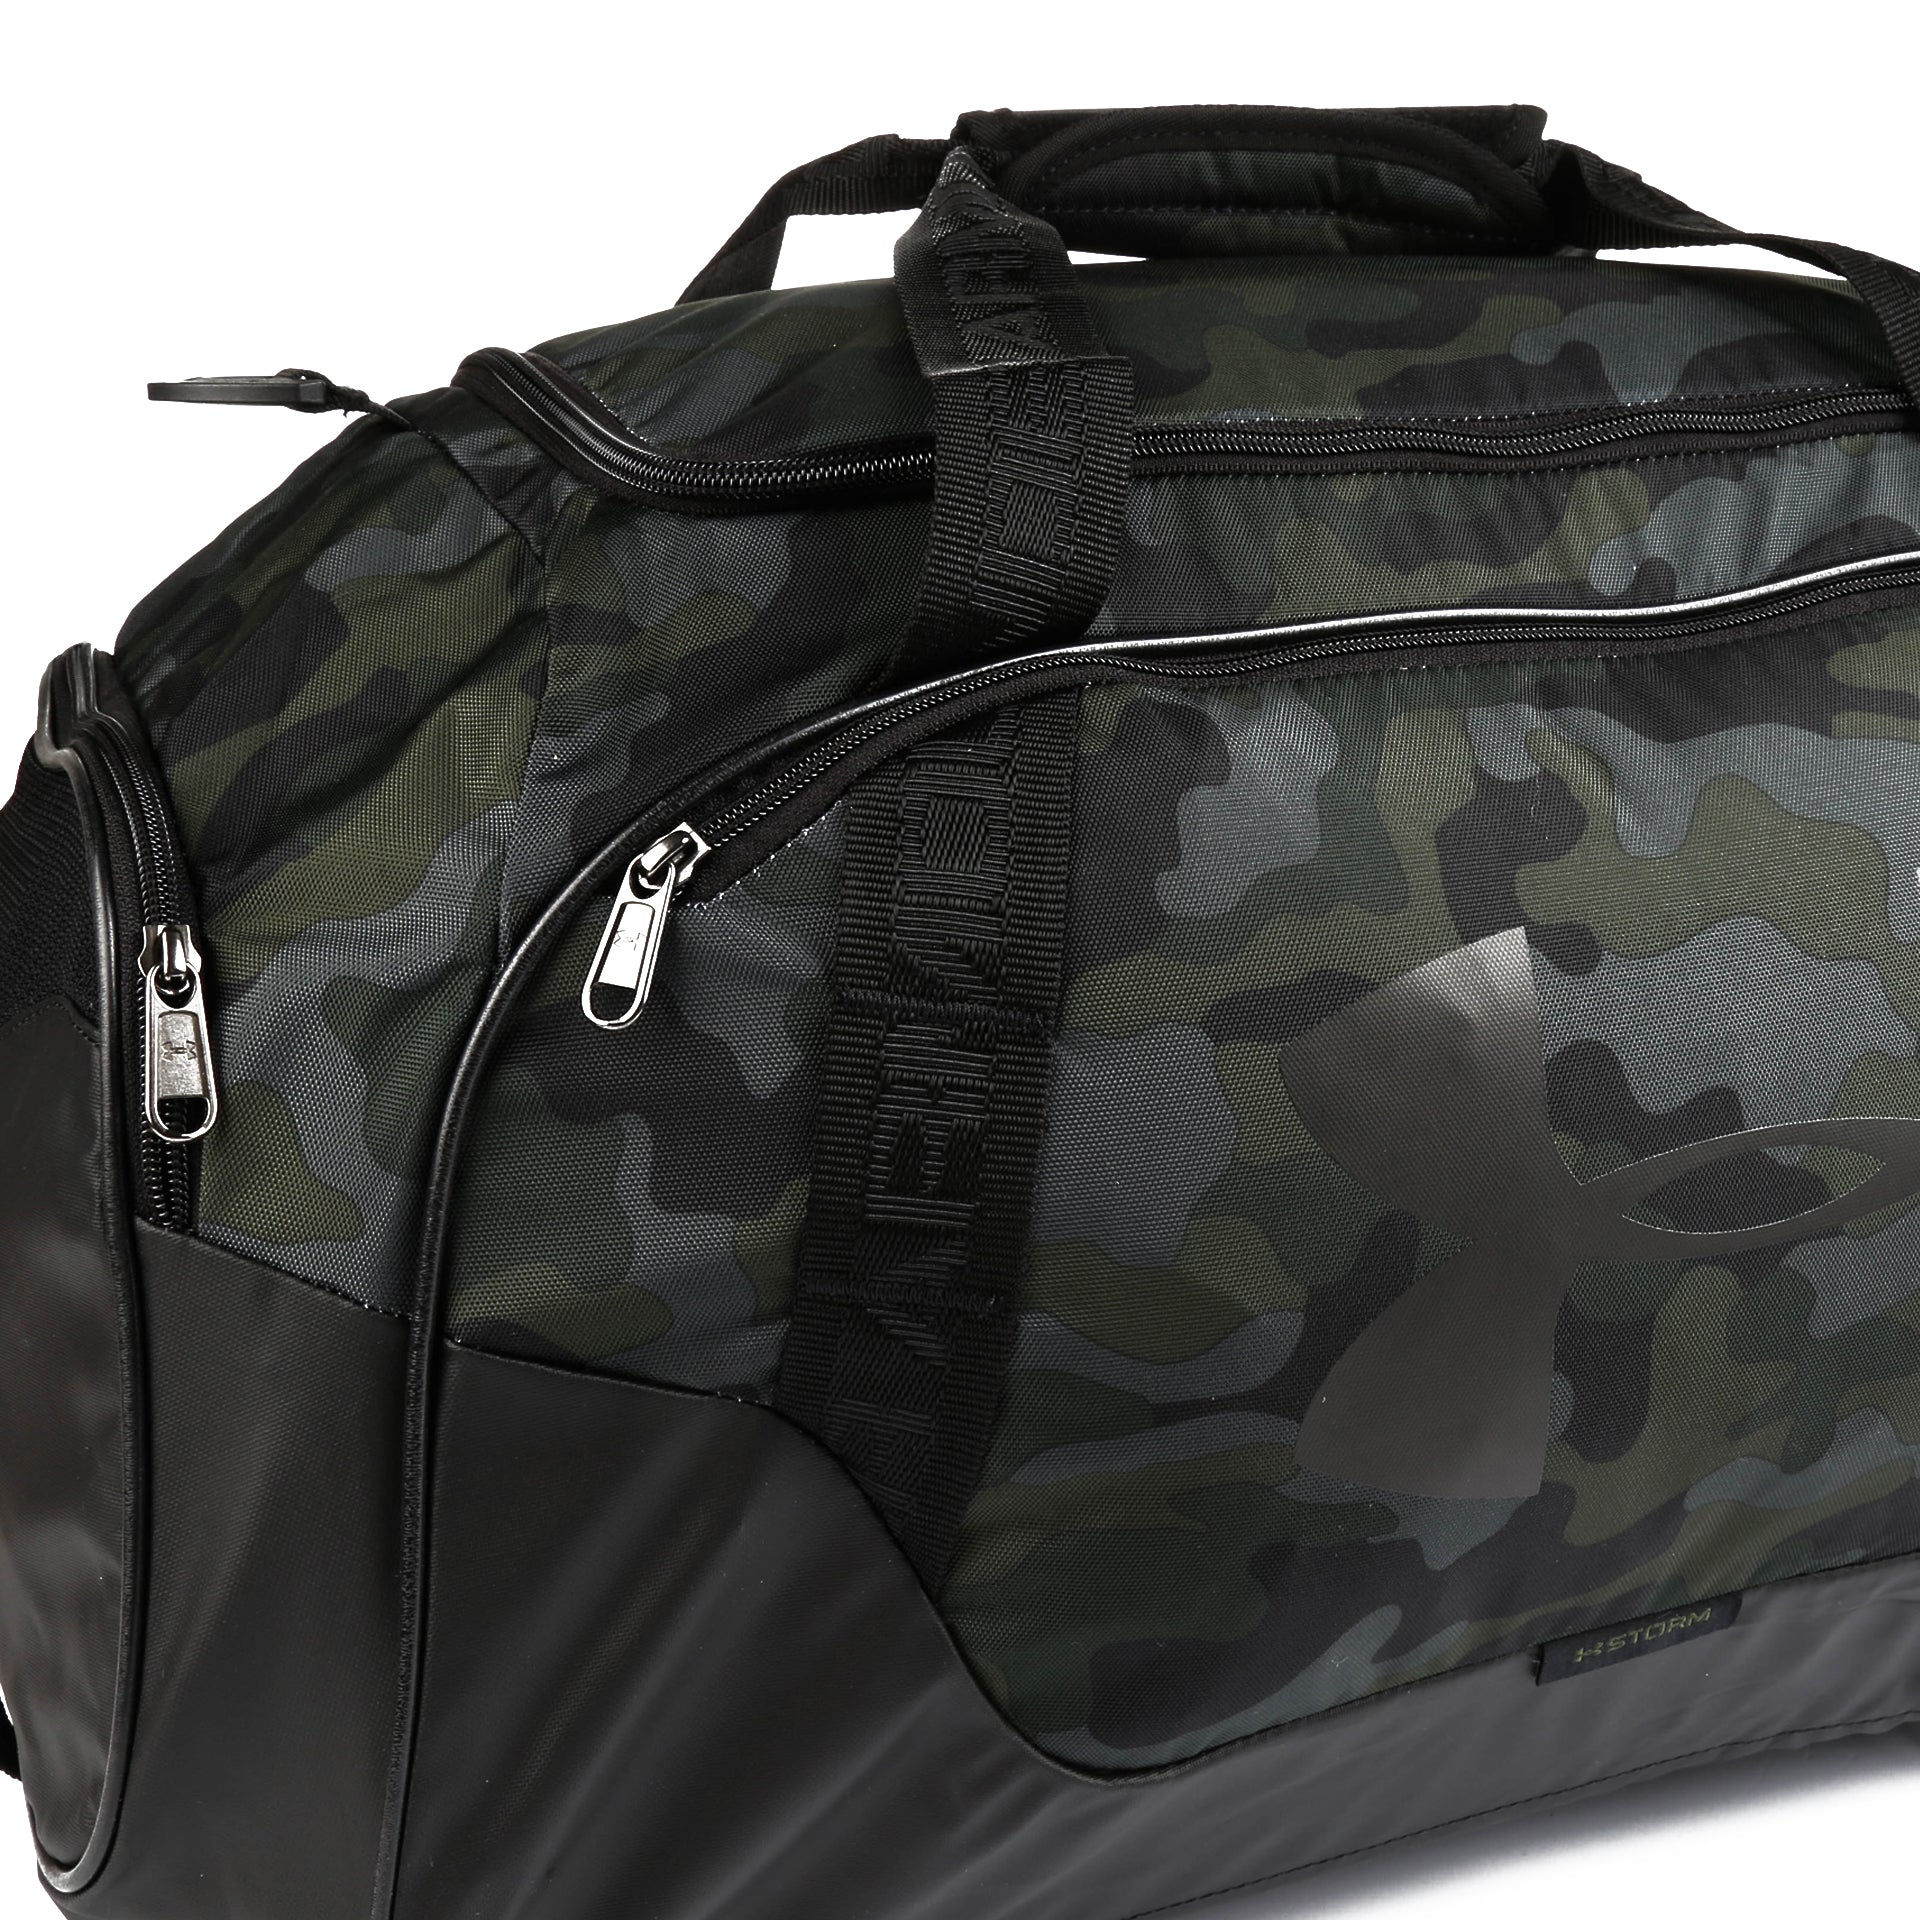 d27cf4df9d32 Under Armour Undeniable 3.0 Medium Duffle bag - Desert Sand   Black ...